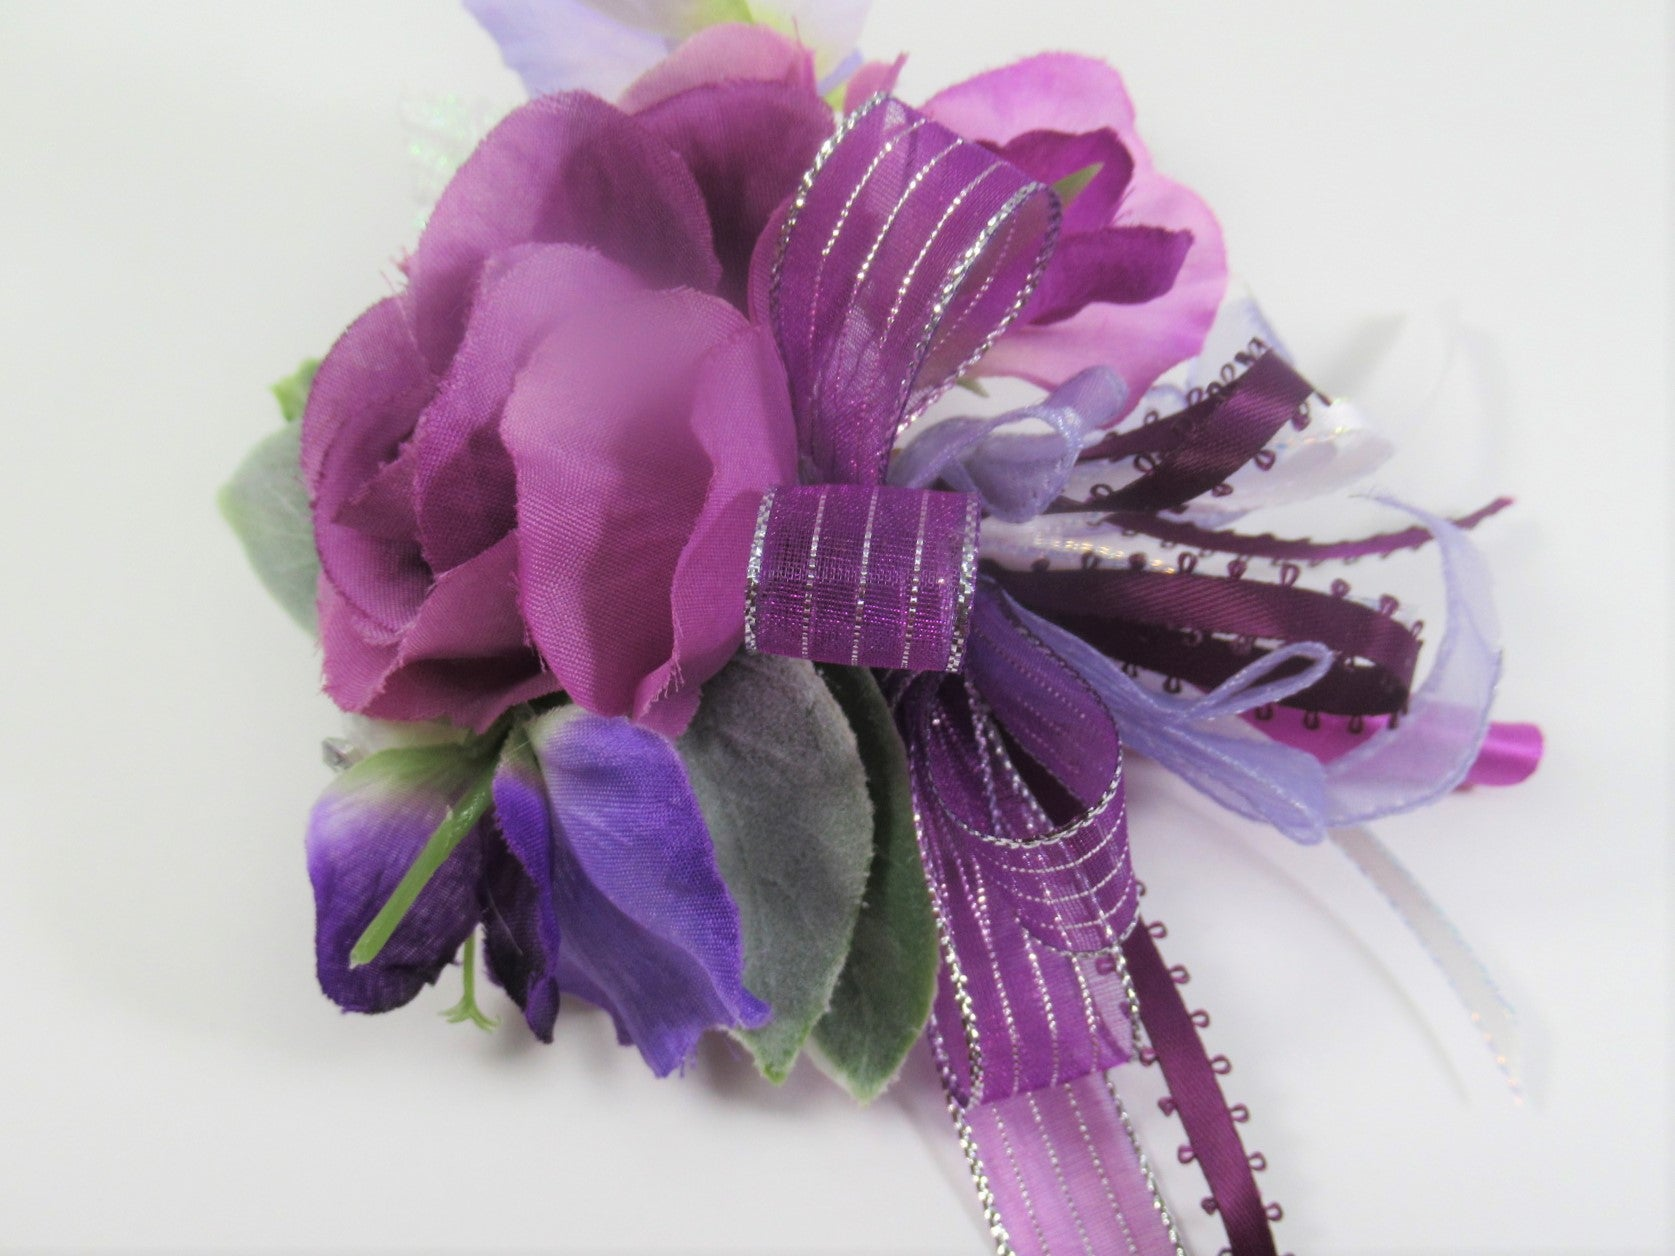 Boutonnierre or Corsage with Purple Silver Ribbon in Radiant Orchid Purple, Violet, Lavender, Periwinkle and White - Odyssey Creations